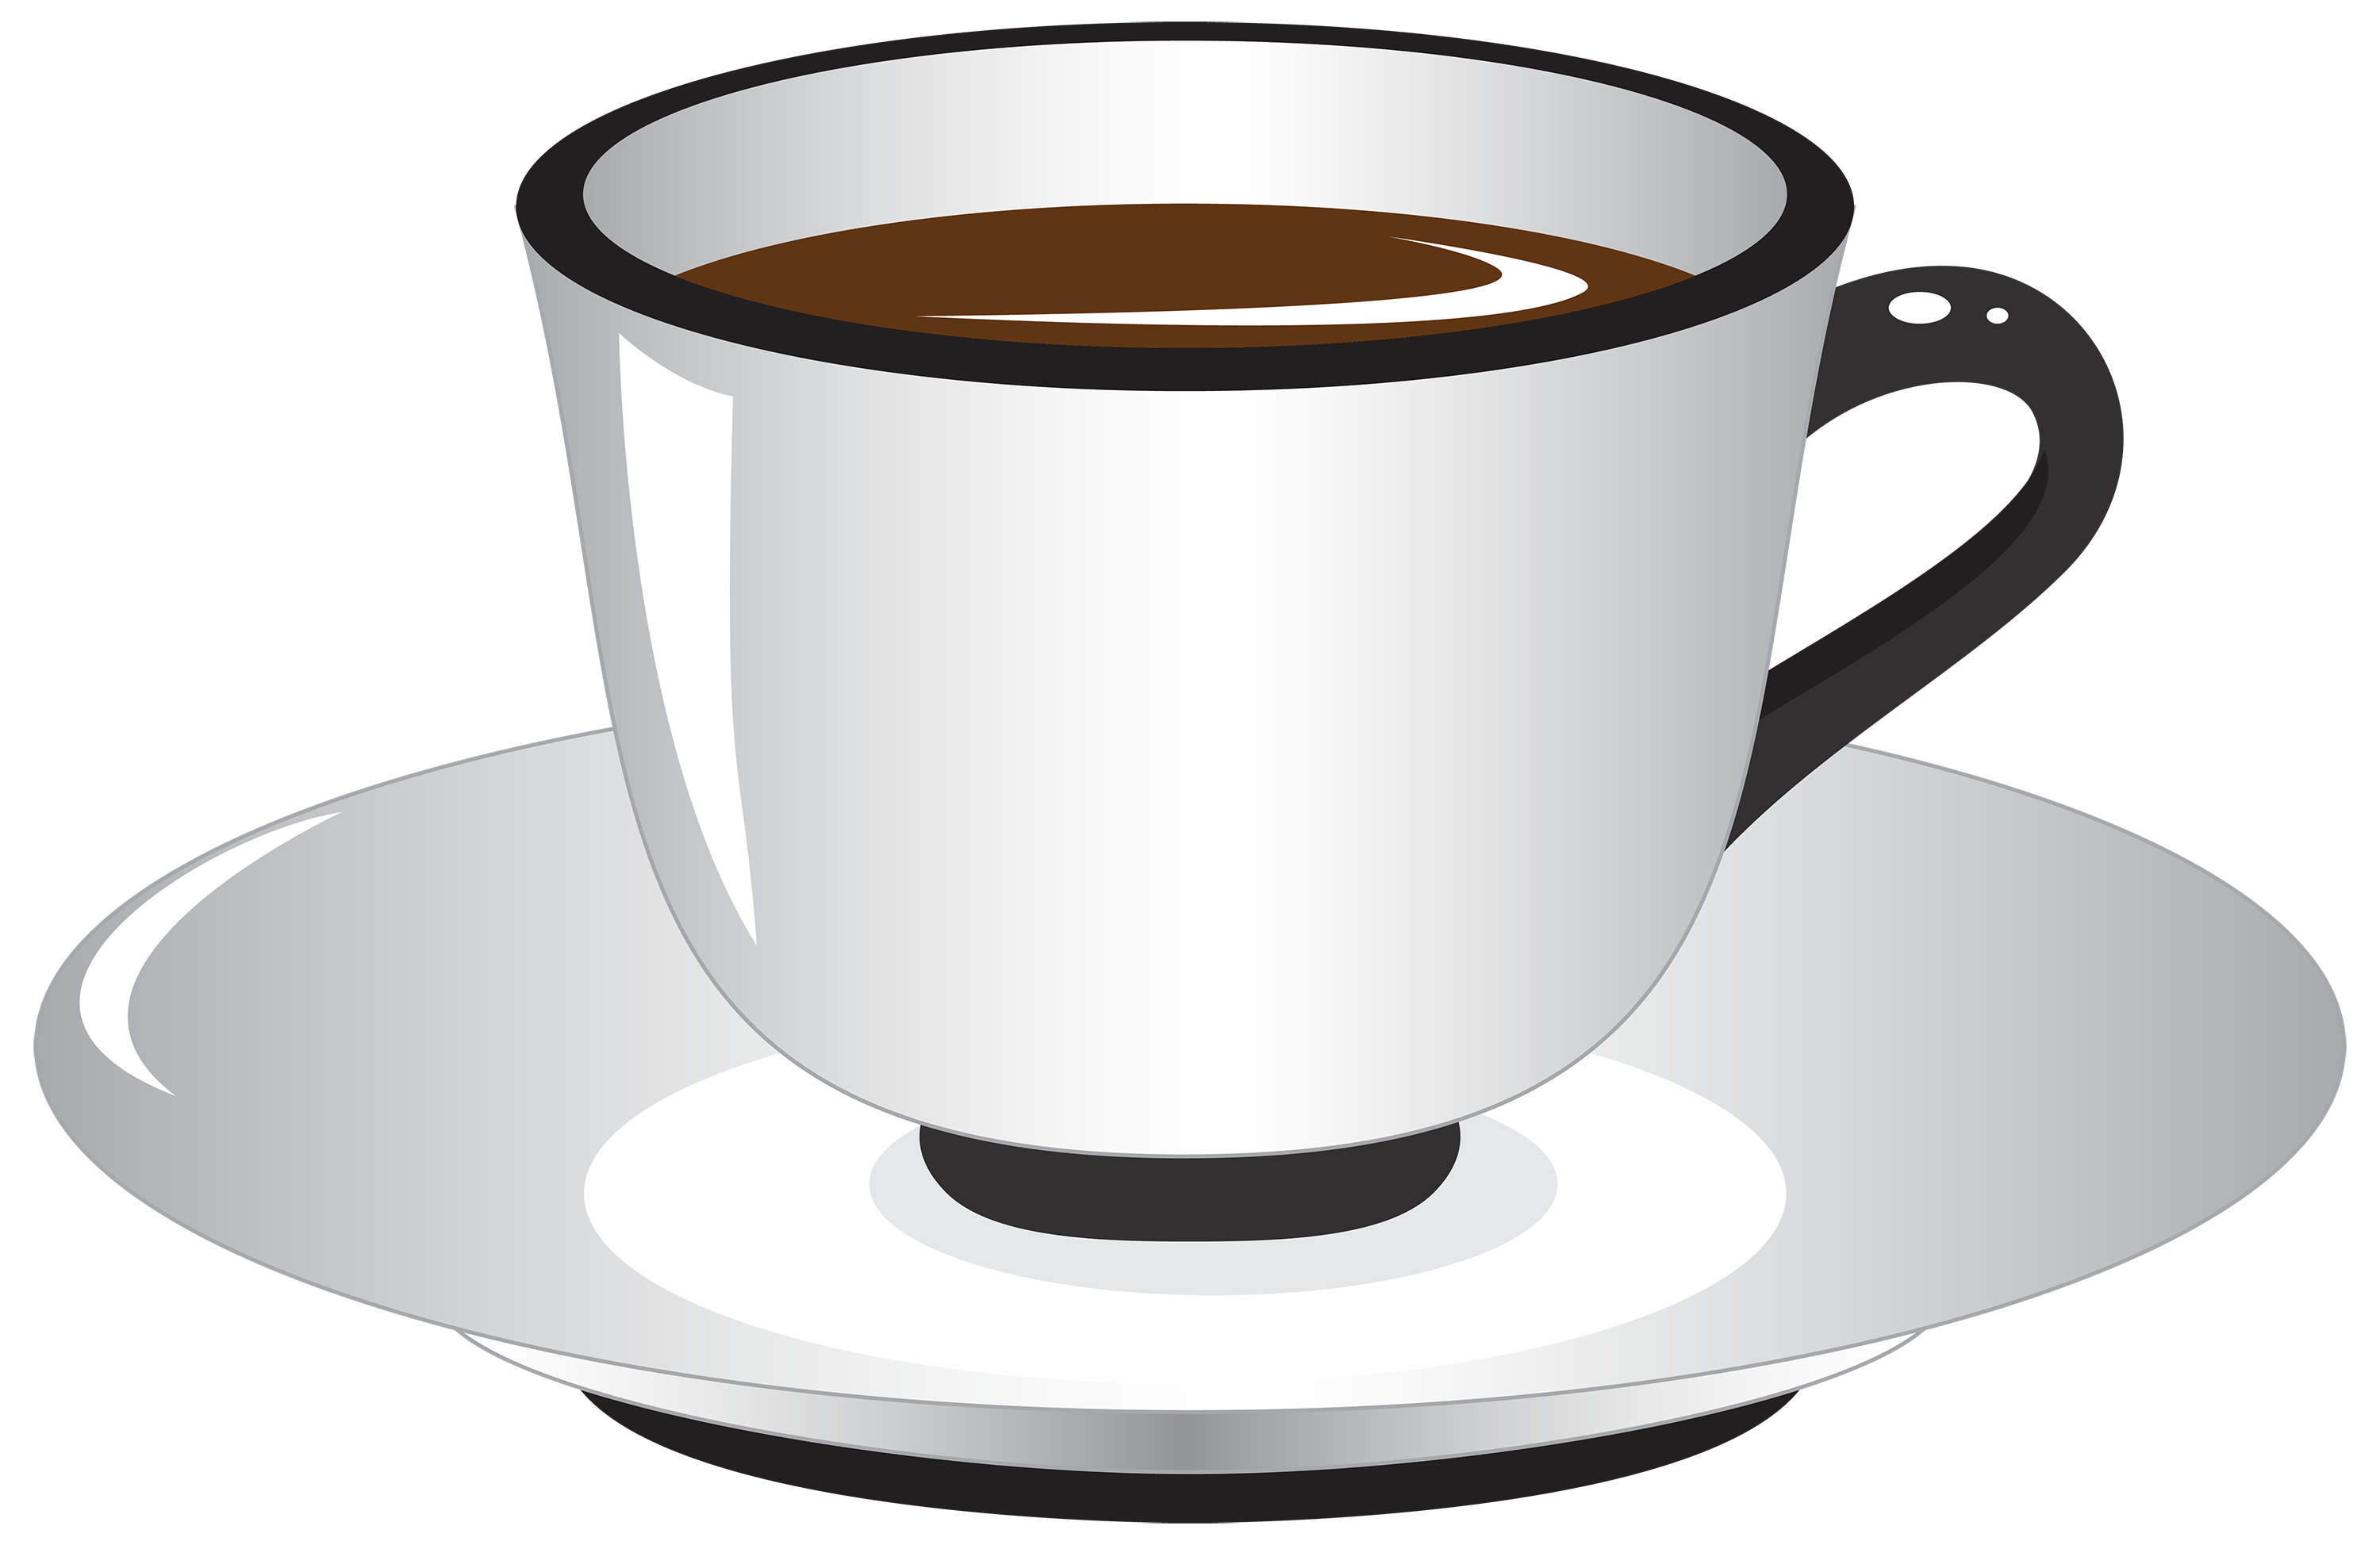 white-and-black-coffee-cup-clipart-the-c